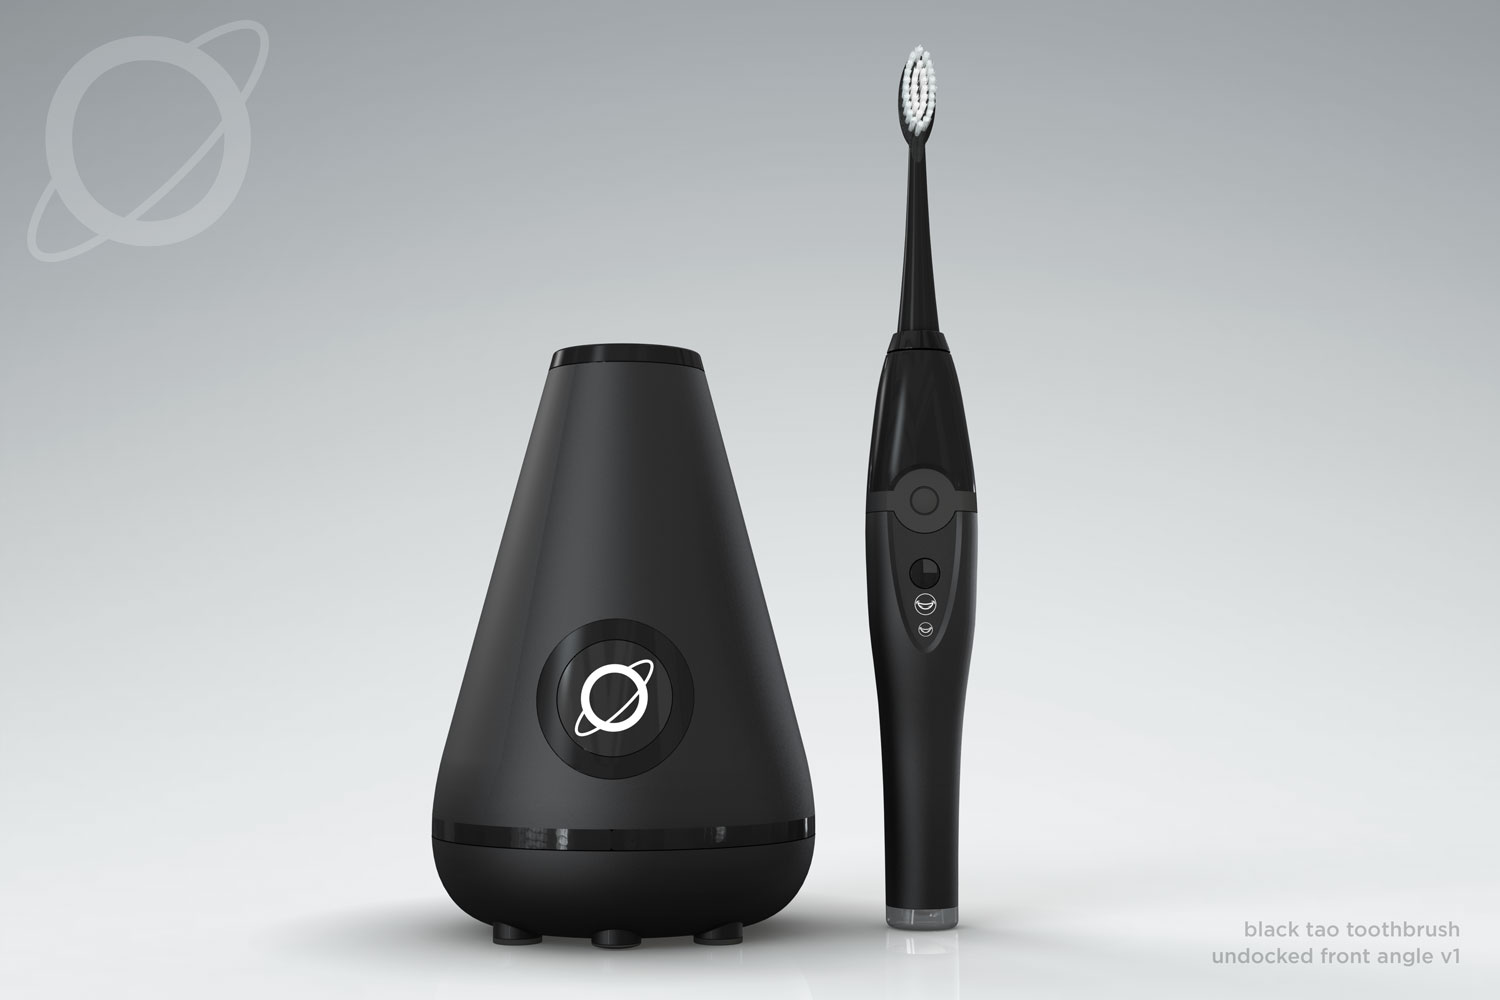 black-toothbrush-undocked-front.jpg